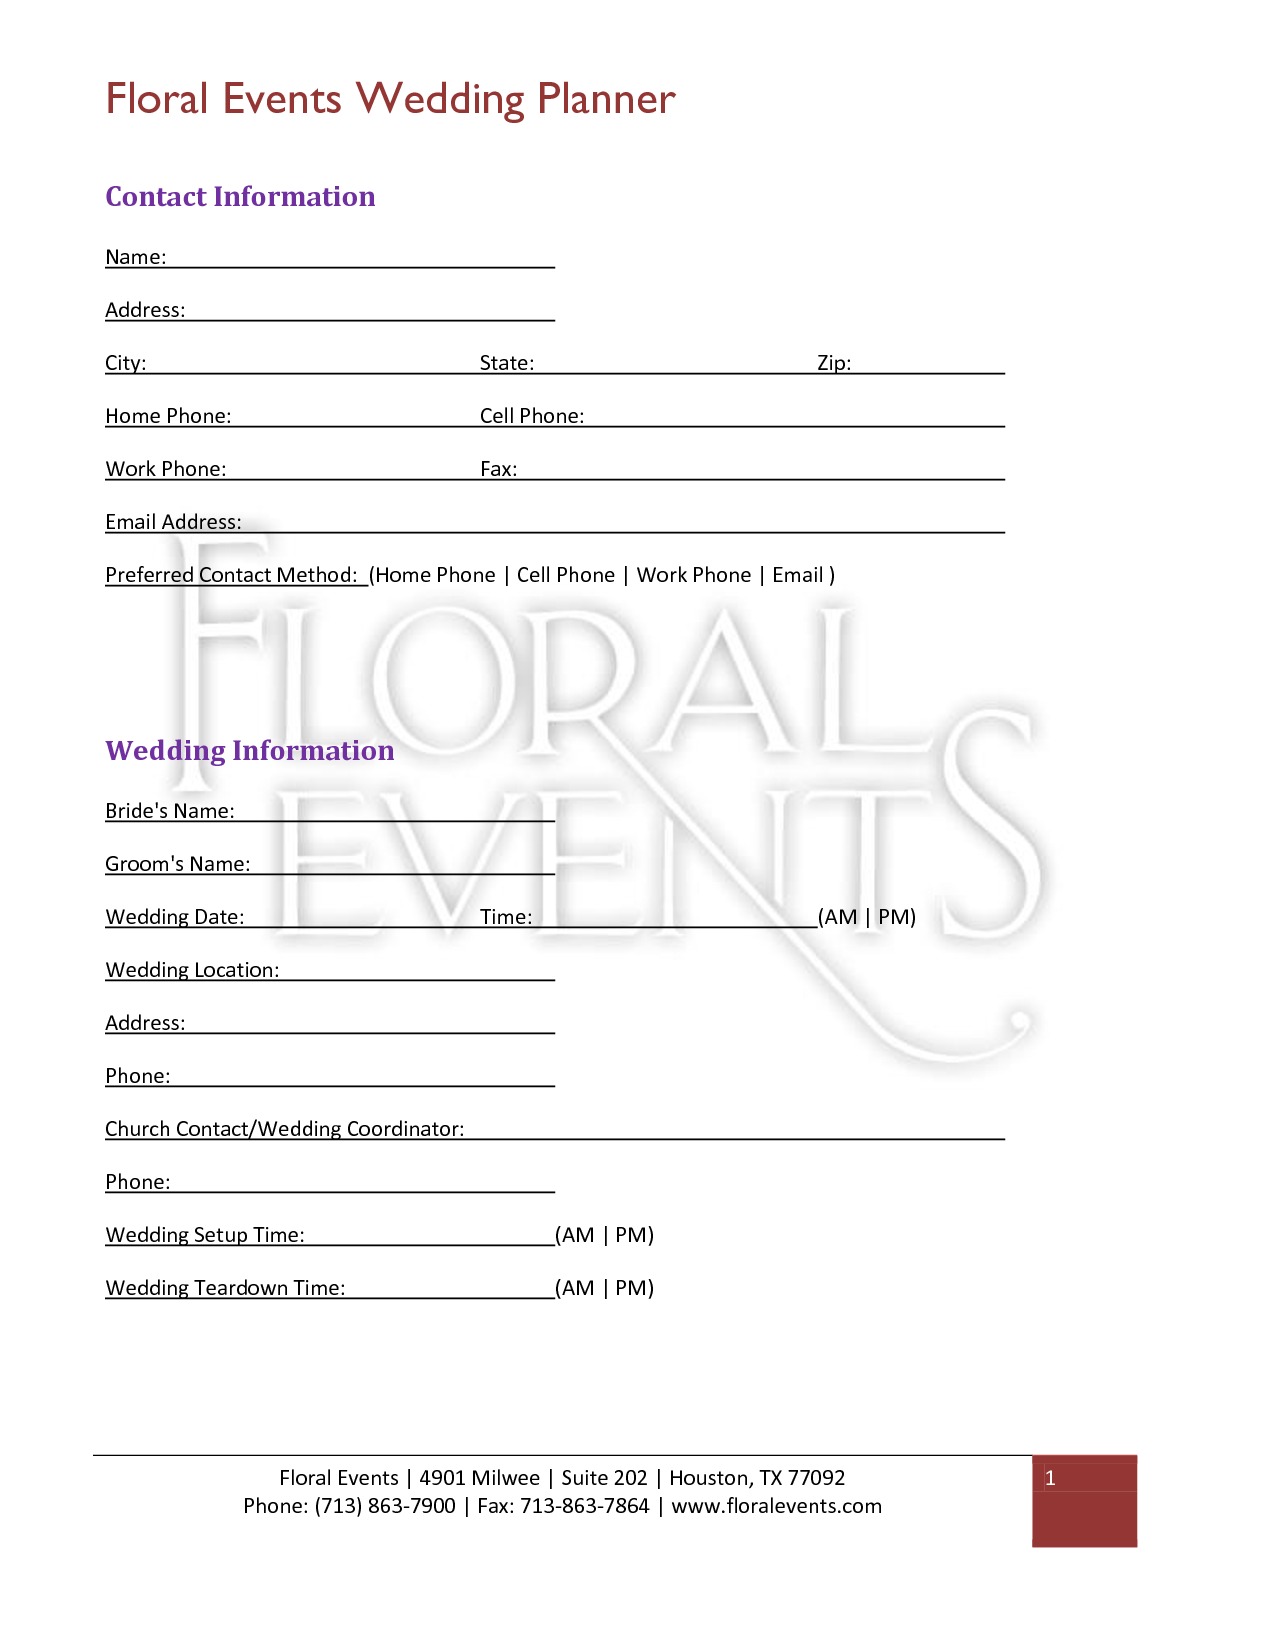 Florist Wedding Contract  For Posies  Poms